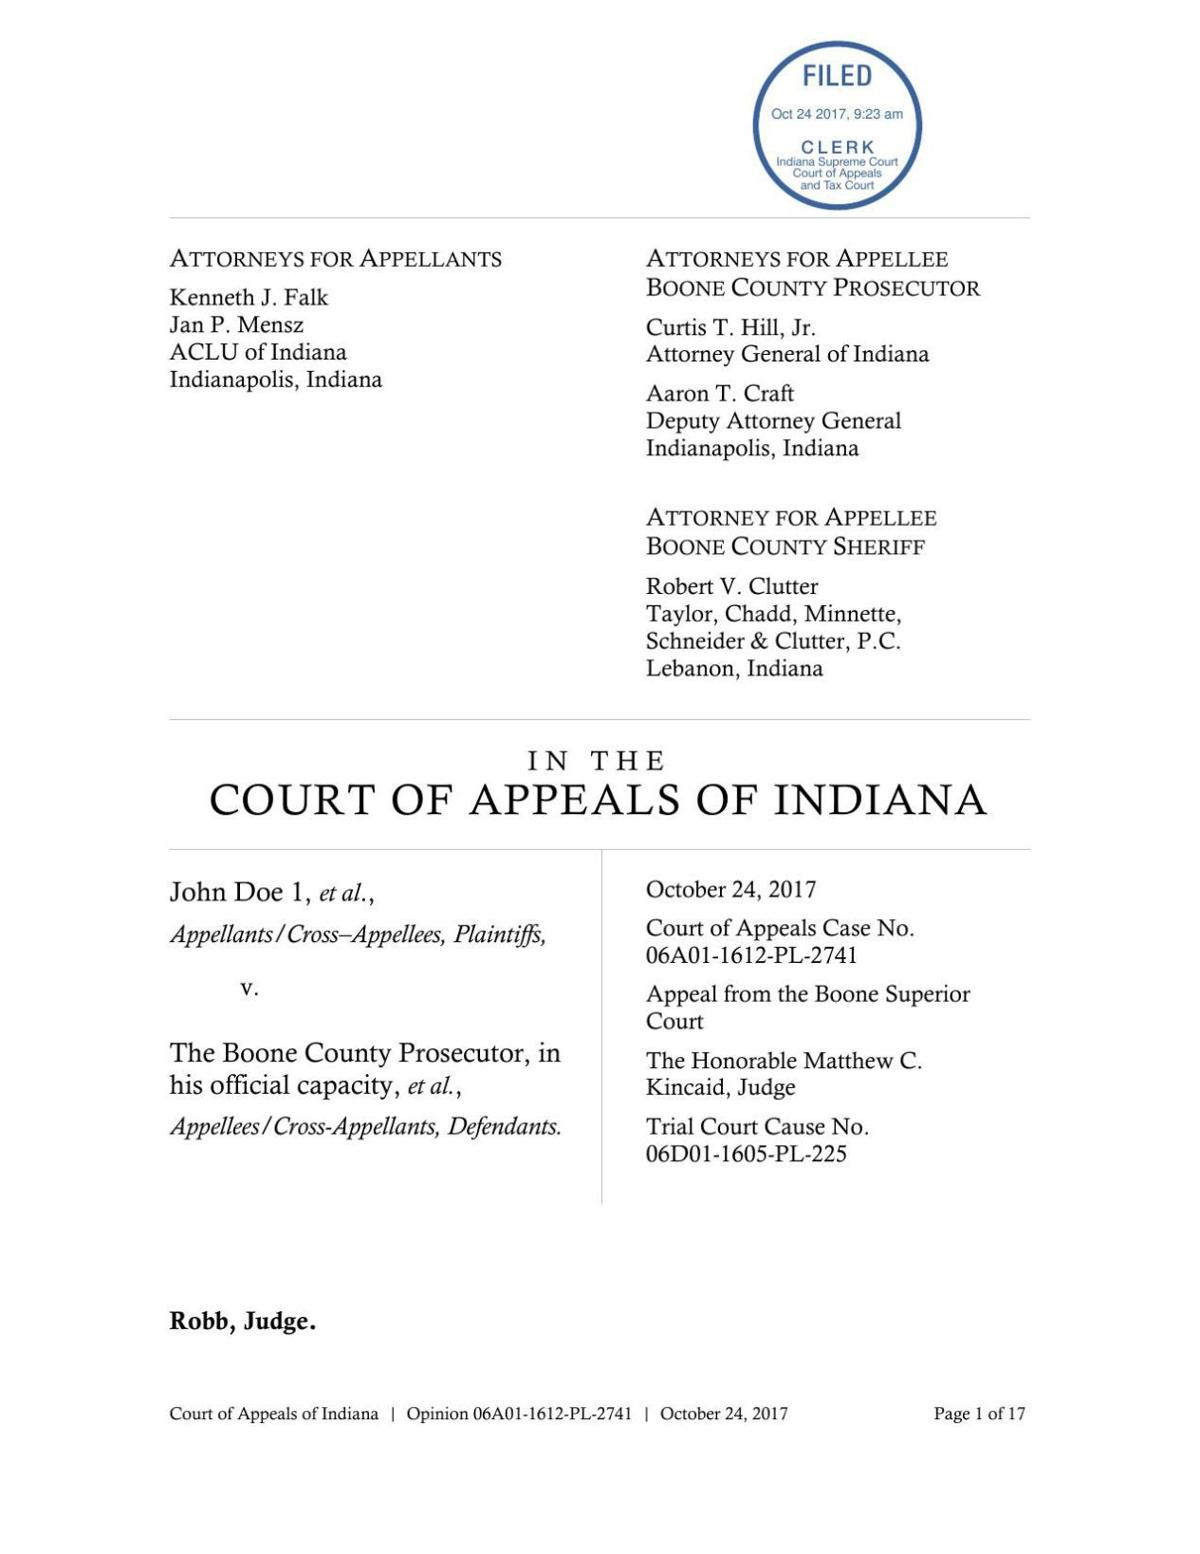 Doe v. Boone County ruling of Indiana Court of Appeals